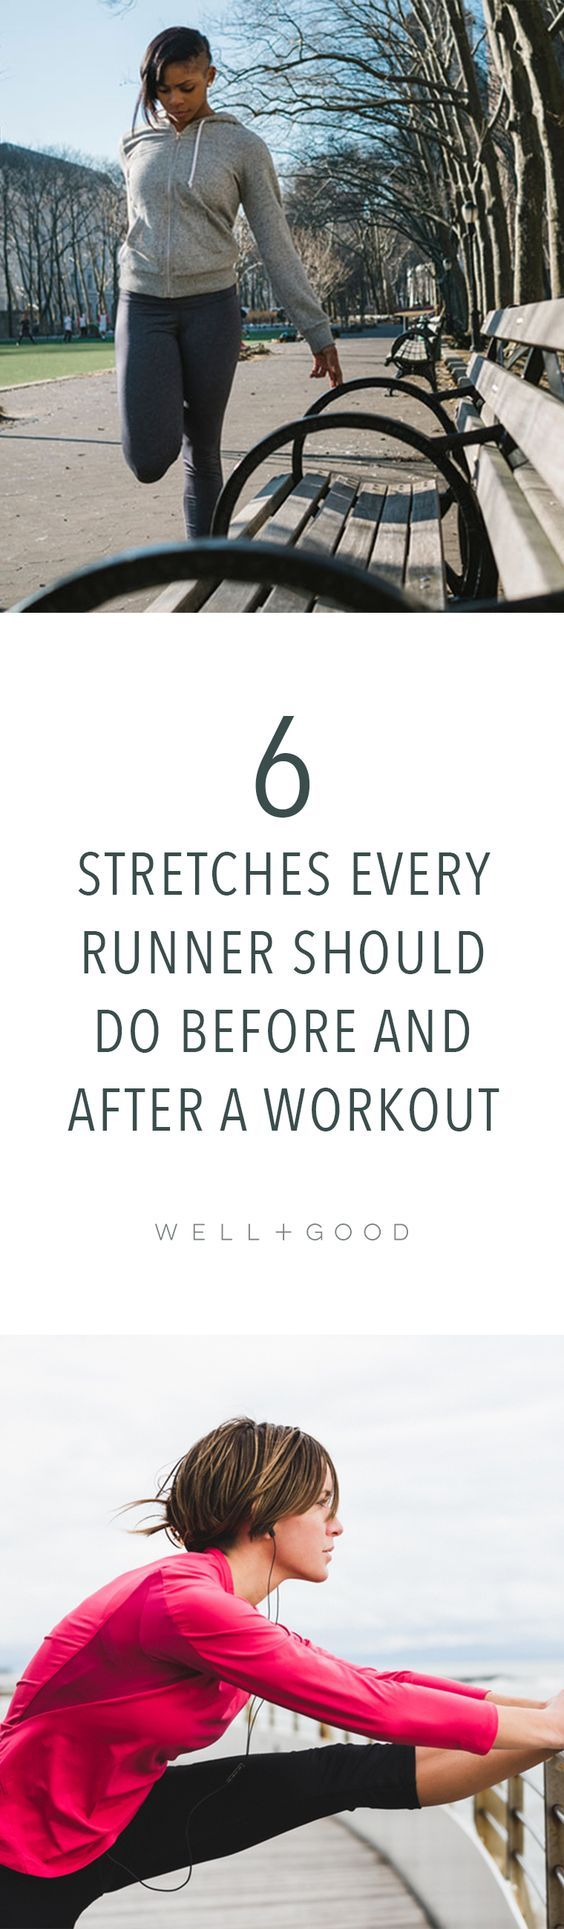 How to stretch after a workout.